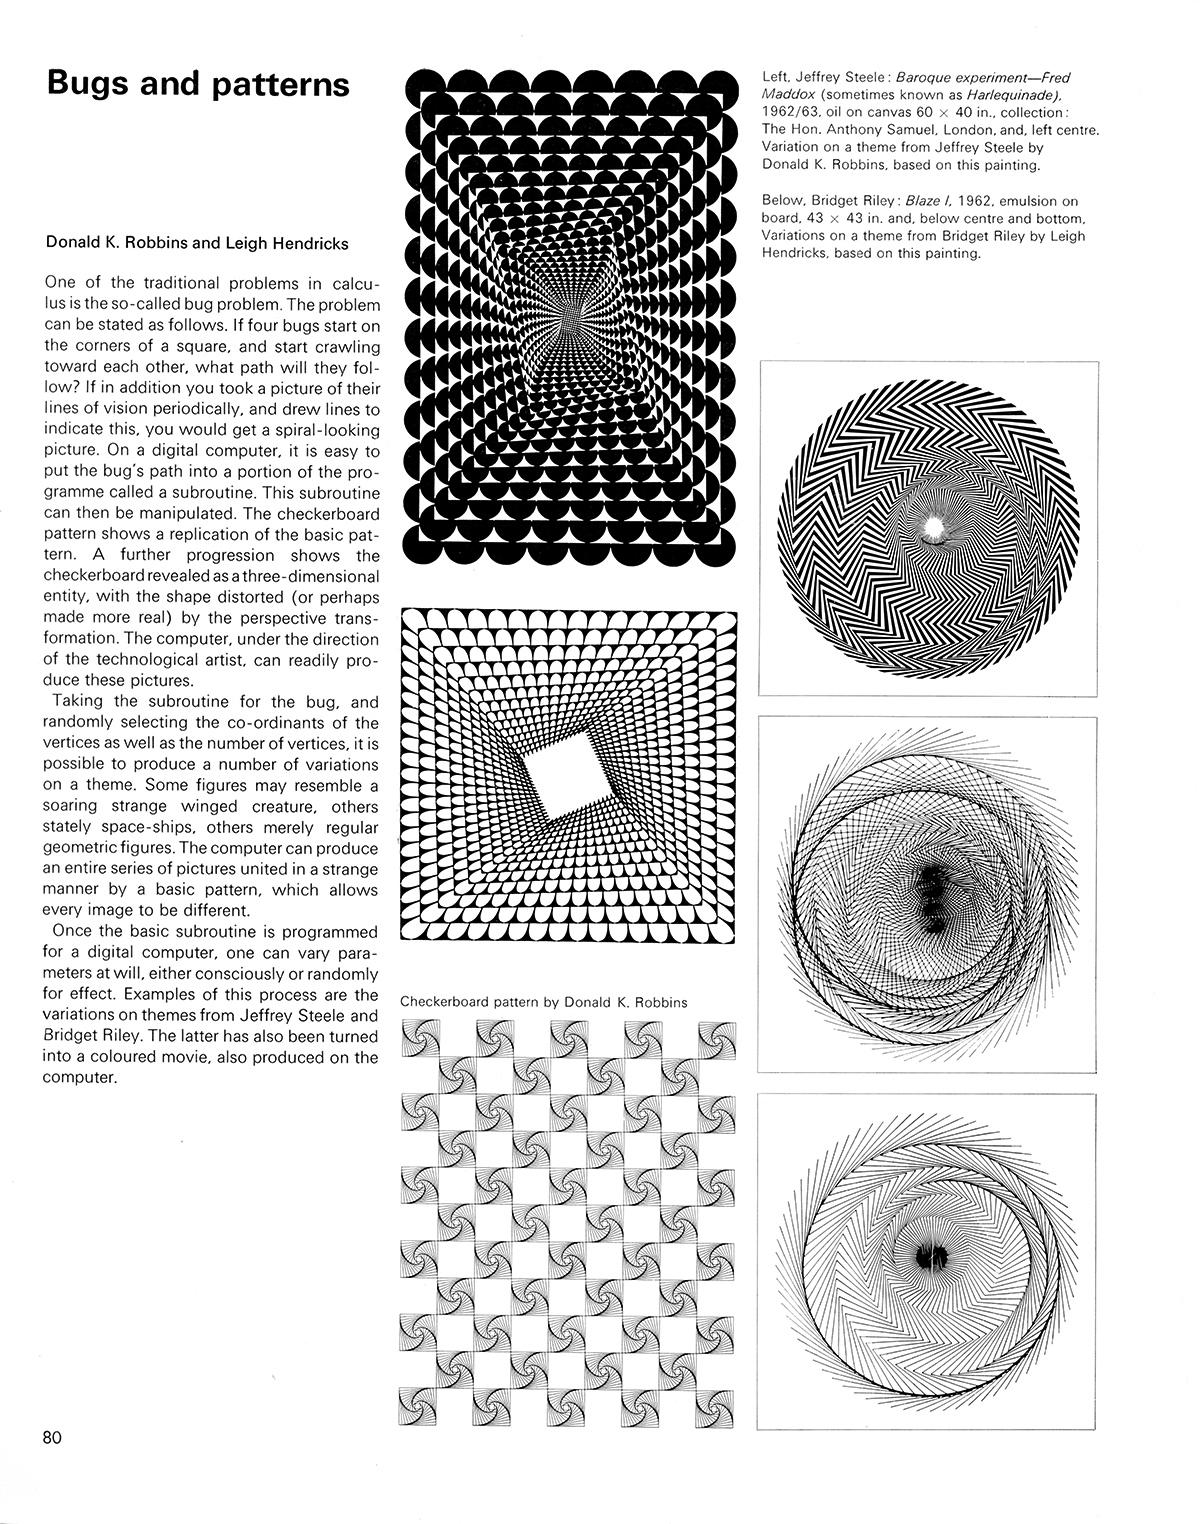 Cybernetic Serendipity: the computer and the arts. Page 80. Published by Studio International (special issue), 1968. © Studio International Foundation.